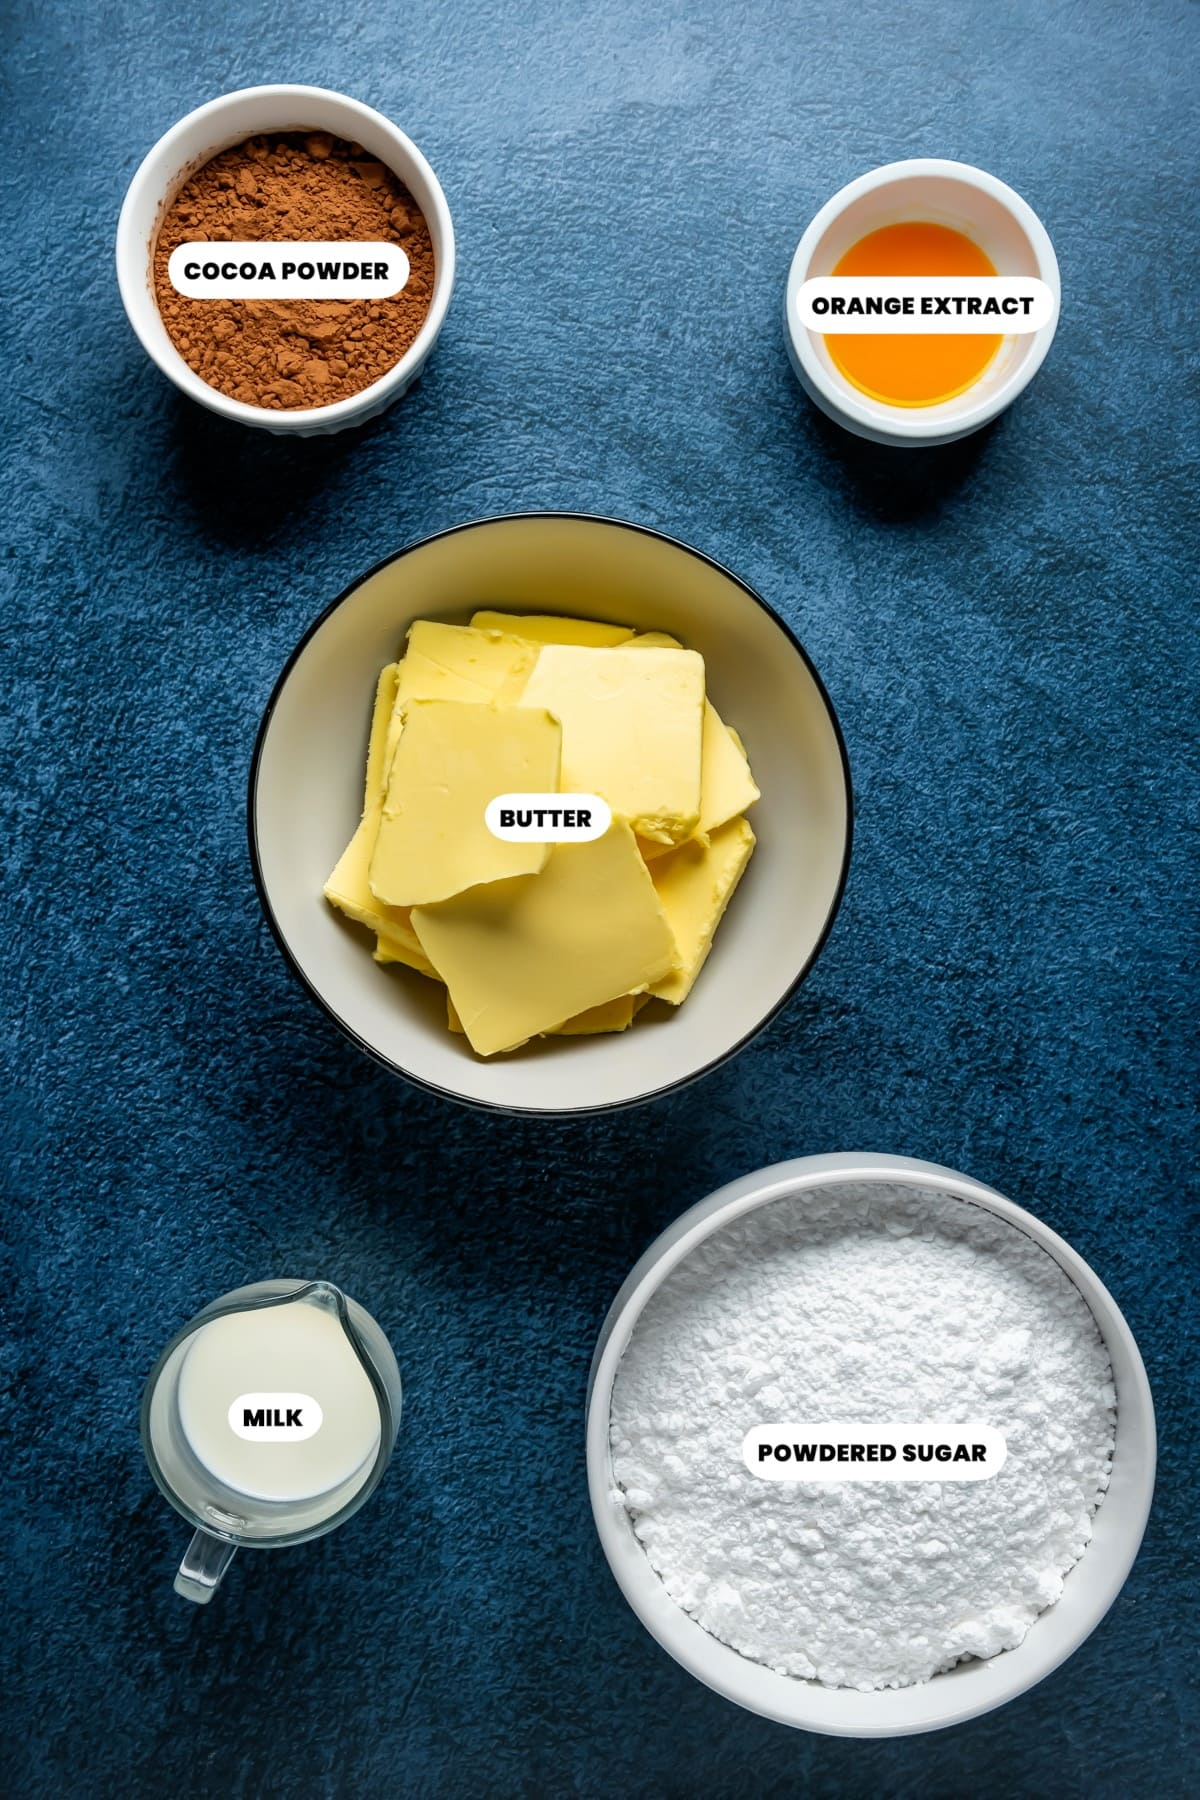 Photo of the ingredients needed to make chocolate orange buttercream.